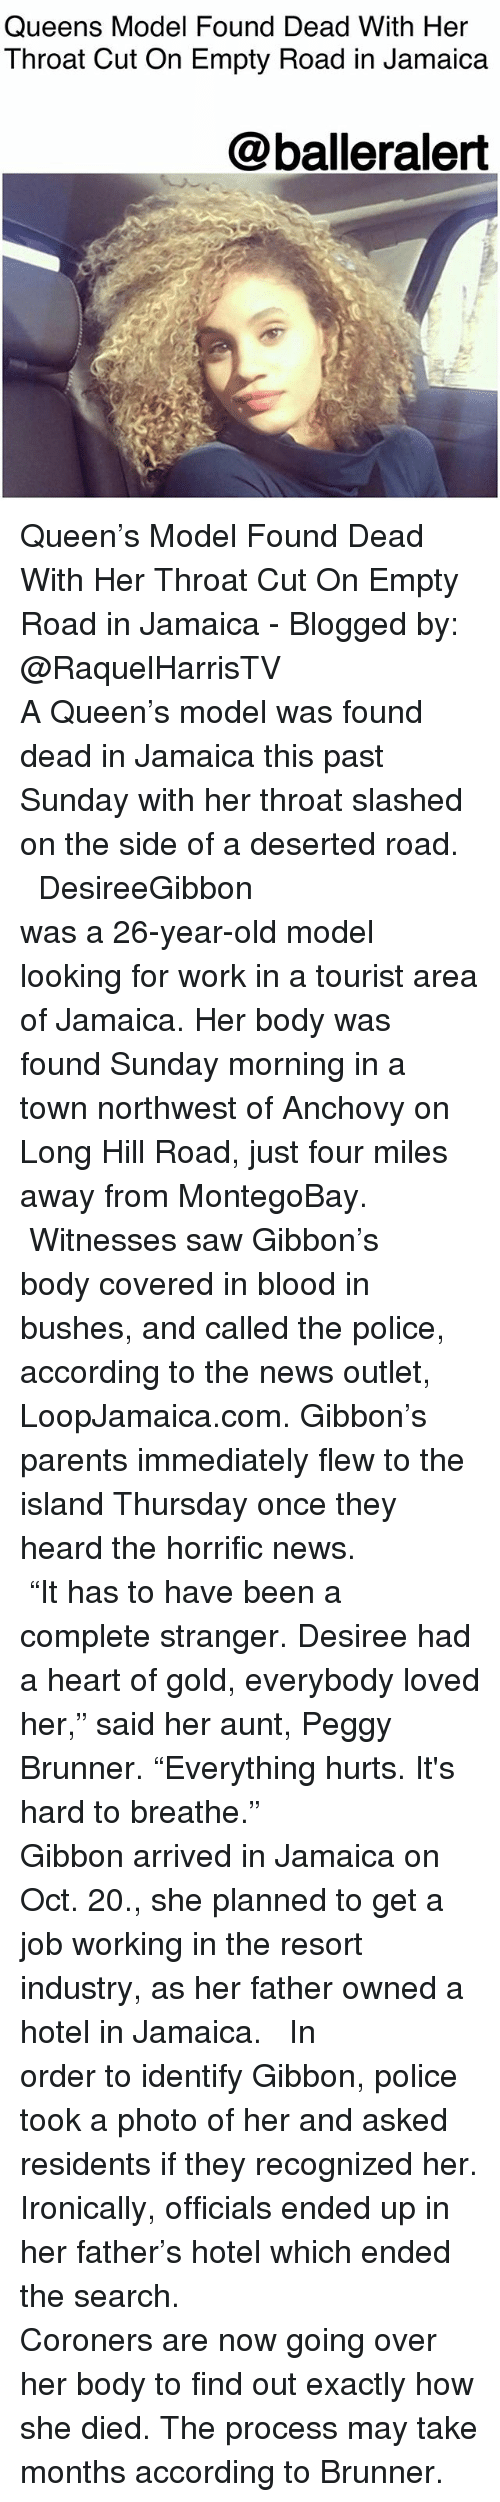 "Memes, News, and Parents: Queens Model Found Dead With Her  Throat Cut On Empty Road in Jamaica  @balleralert Queen's Model Found Dead With Her Throat Cut On Empty Road in Jamaica - Blogged by: @RaquelHarrisTV ⠀⠀⠀⠀⠀⠀⠀⠀⠀ ⠀⠀⠀⠀⠀⠀⠀⠀⠀ A Queen's model was found dead in Jamaica this past Sunday with her throat slashed on the side of a deserted road. ⠀⠀⠀⠀⠀⠀⠀⠀⠀ ⠀⠀⠀⠀⠀⠀⠀⠀⠀ DesireeGibbon was a 26-year-old model looking for work in a tourist area of Jamaica. Her body was found Sunday morning in a town northwest of Anchovy on Long Hill Road, just four miles away from MontegoBay. ⠀⠀⠀⠀⠀⠀⠀⠀⠀ ⠀⠀⠀⠀⠀⠀⠀⠀⠀ Witnesses saw Gibbon's body covered in blood in bushes, and called the police, according to the news outlet, LoopJamaica.com. Gibbon's parents immediately flew to the island Thursday once they heard the horrific news. ⠀⠀⠀⠀⠀⠀⠀⠀⠀ ⠀⠀⠀⠀⠀⠀⠀⠀⠀ ""It has to have been a complete stranger. Desiree had a heart of gold, everybody loved her,"" said her aunt, Peggy Brunner. ""Everything hurts. It's hard to breathe."" ⠀⠀⠀⠀⠀⠀⠀⠀⠀ ⠀⠀⠀⠀⠀⠀⠀⠀⠀ Gibbon arrived in Jamaica on Oct. 20., she planned to get a job working in the resort industry, as her father owned a hotel in Jamaica. ⠀⠀⠀⠀⠀⠀⠀⠀⠀ ⠀⠀⠀⠀⠀⠀⠀⠀⠀ In order to identify Gibbon, police took a photo of her and asked residents if they recognized her. Ironically, officials ended up in her father's hotel which ended the search. ⠀⠀⠀⠀⠀⠀⠀⠀⠀ ⠀⠀⠀⠀⠀⠀⠀⠀⠀ Coroners are now going over her body to find out exactly how she died. The process may take months according to Brunner."